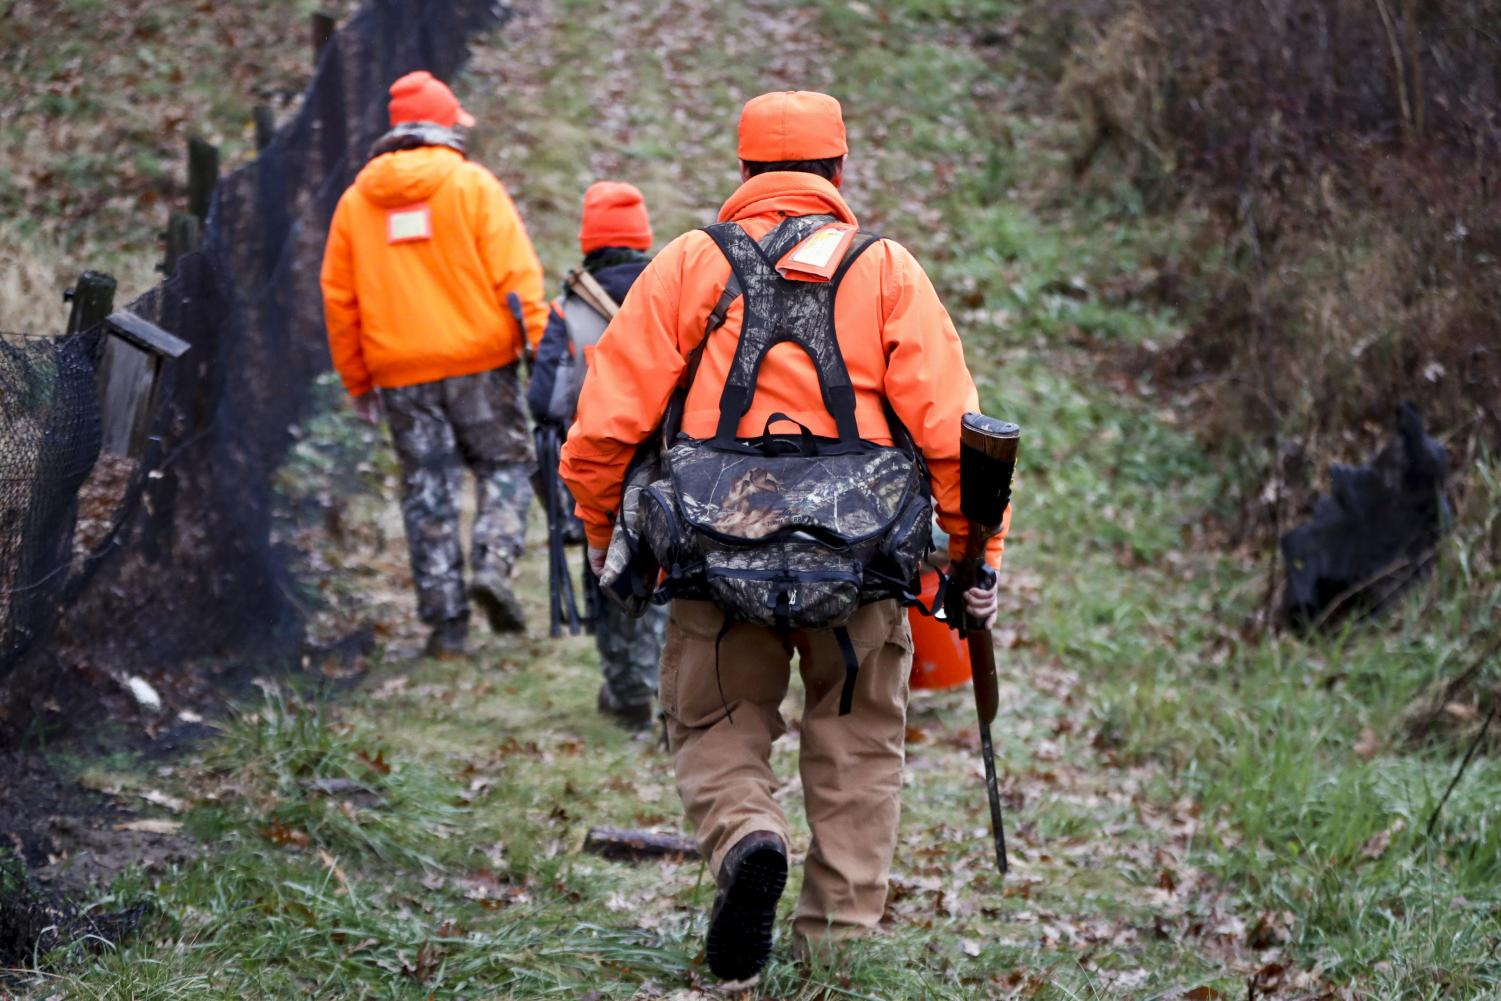 Santo Cerminaro, right, follows his son, Dominick Cerminaro, left, and grandson, Santo Cerminaro, 11, into the woods to go deer hunting on the first day of regular firearms deer hunting season, in most of Pennsylvania, Monday, Nov. 26, 2018 in Zelienople, Pa.